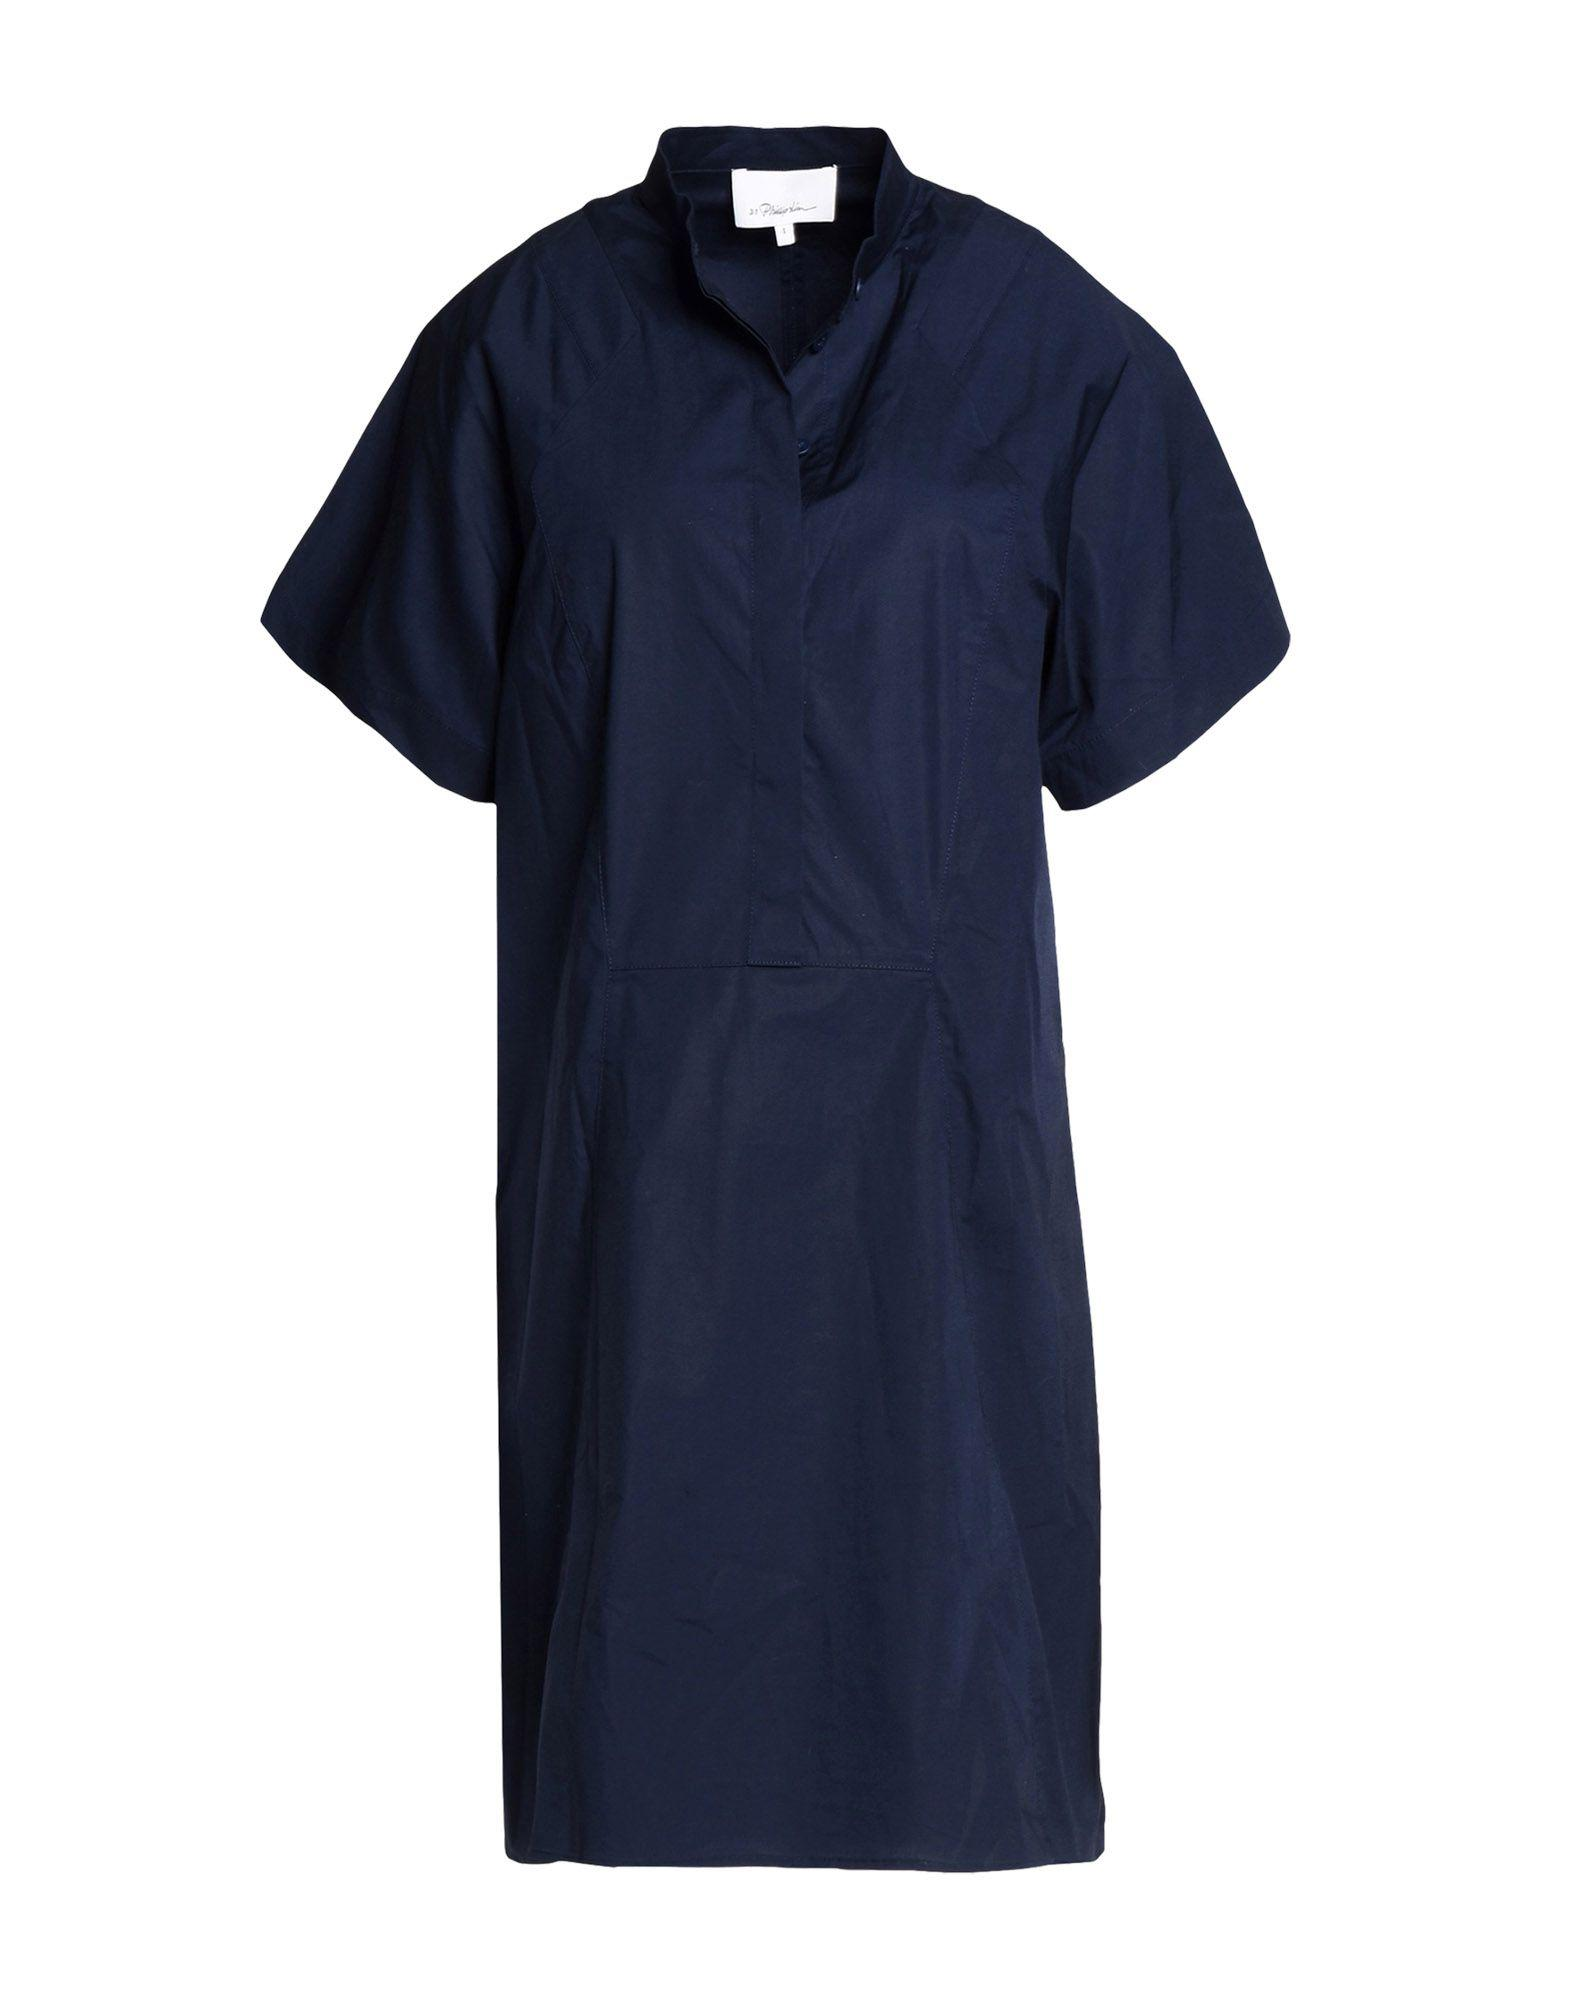 3.1 Phillip Lim Shirt Dress In Dark Blue